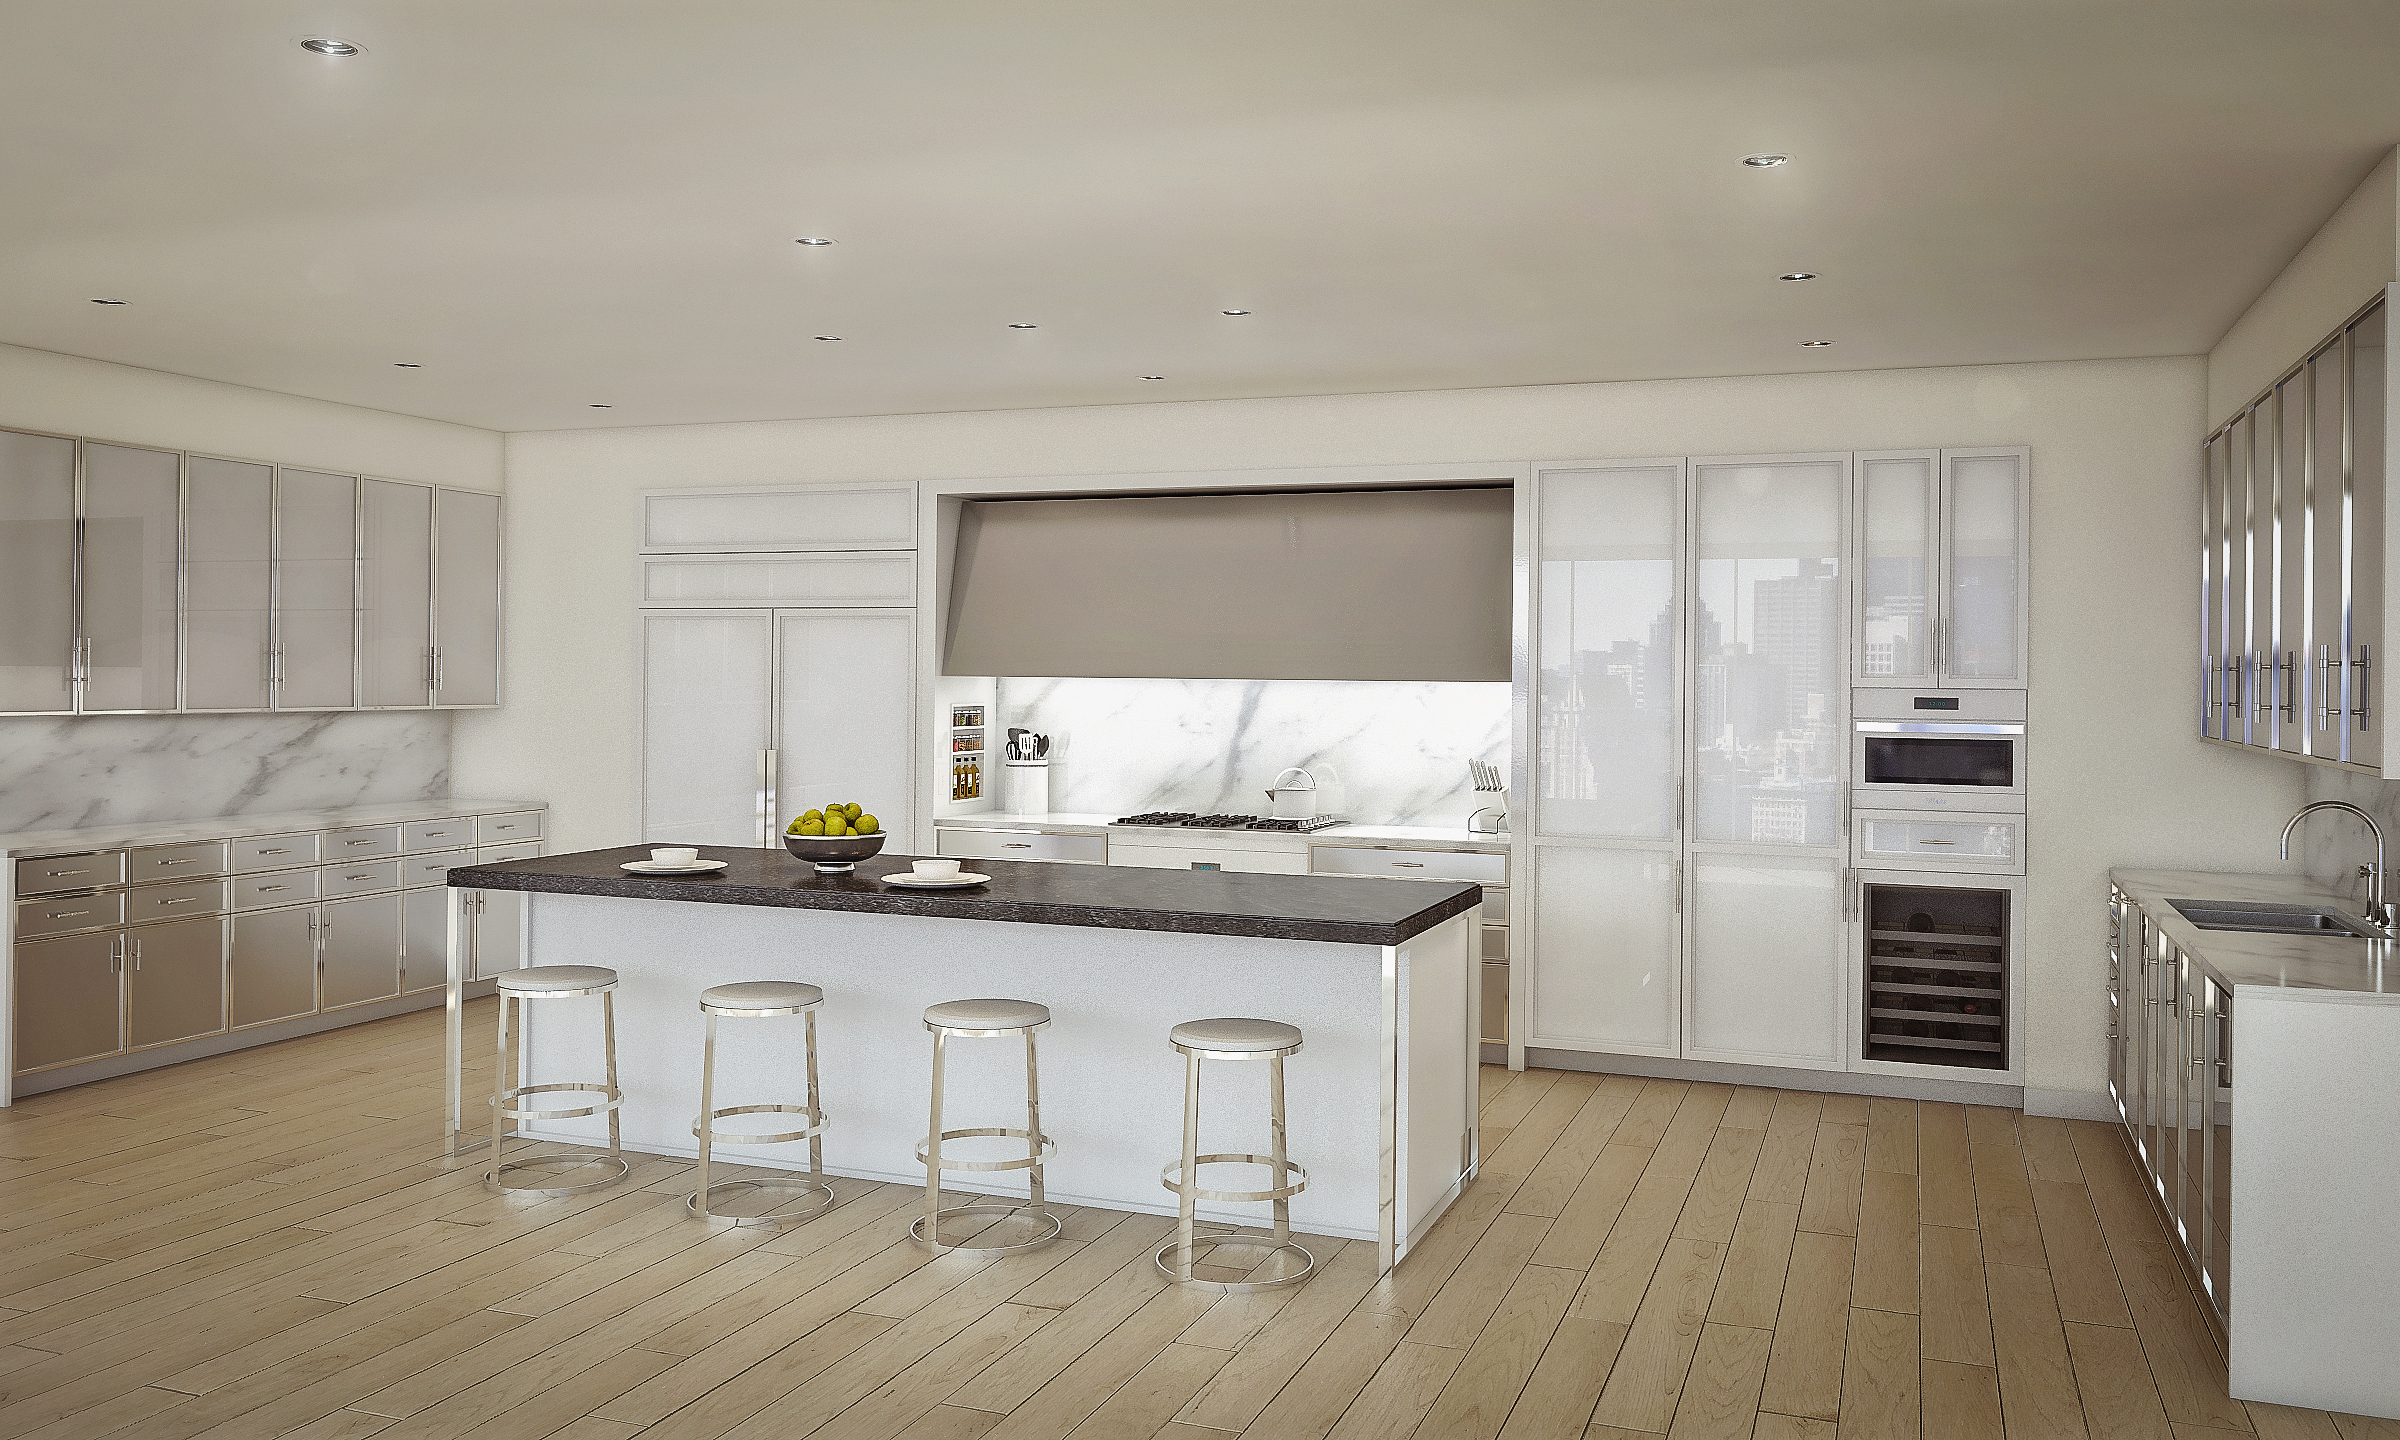 ARCHITECTURAL IMAGERY_IRP KITCHENS__05.jpg